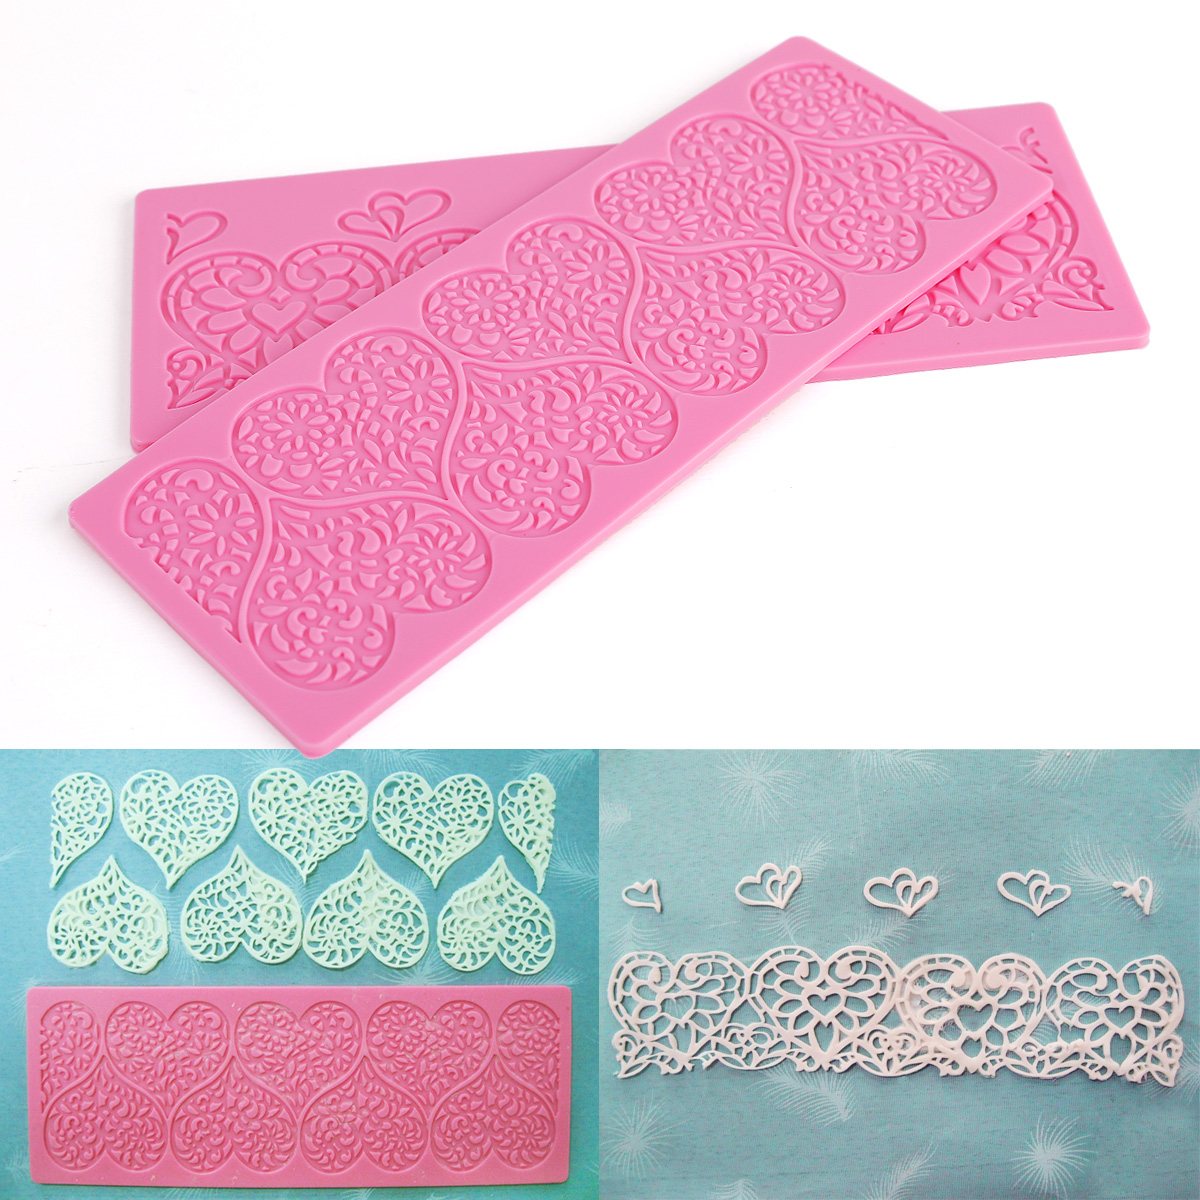 10 Patterns Lace Maker Bolder Silicone Mould Fondant Molds ...